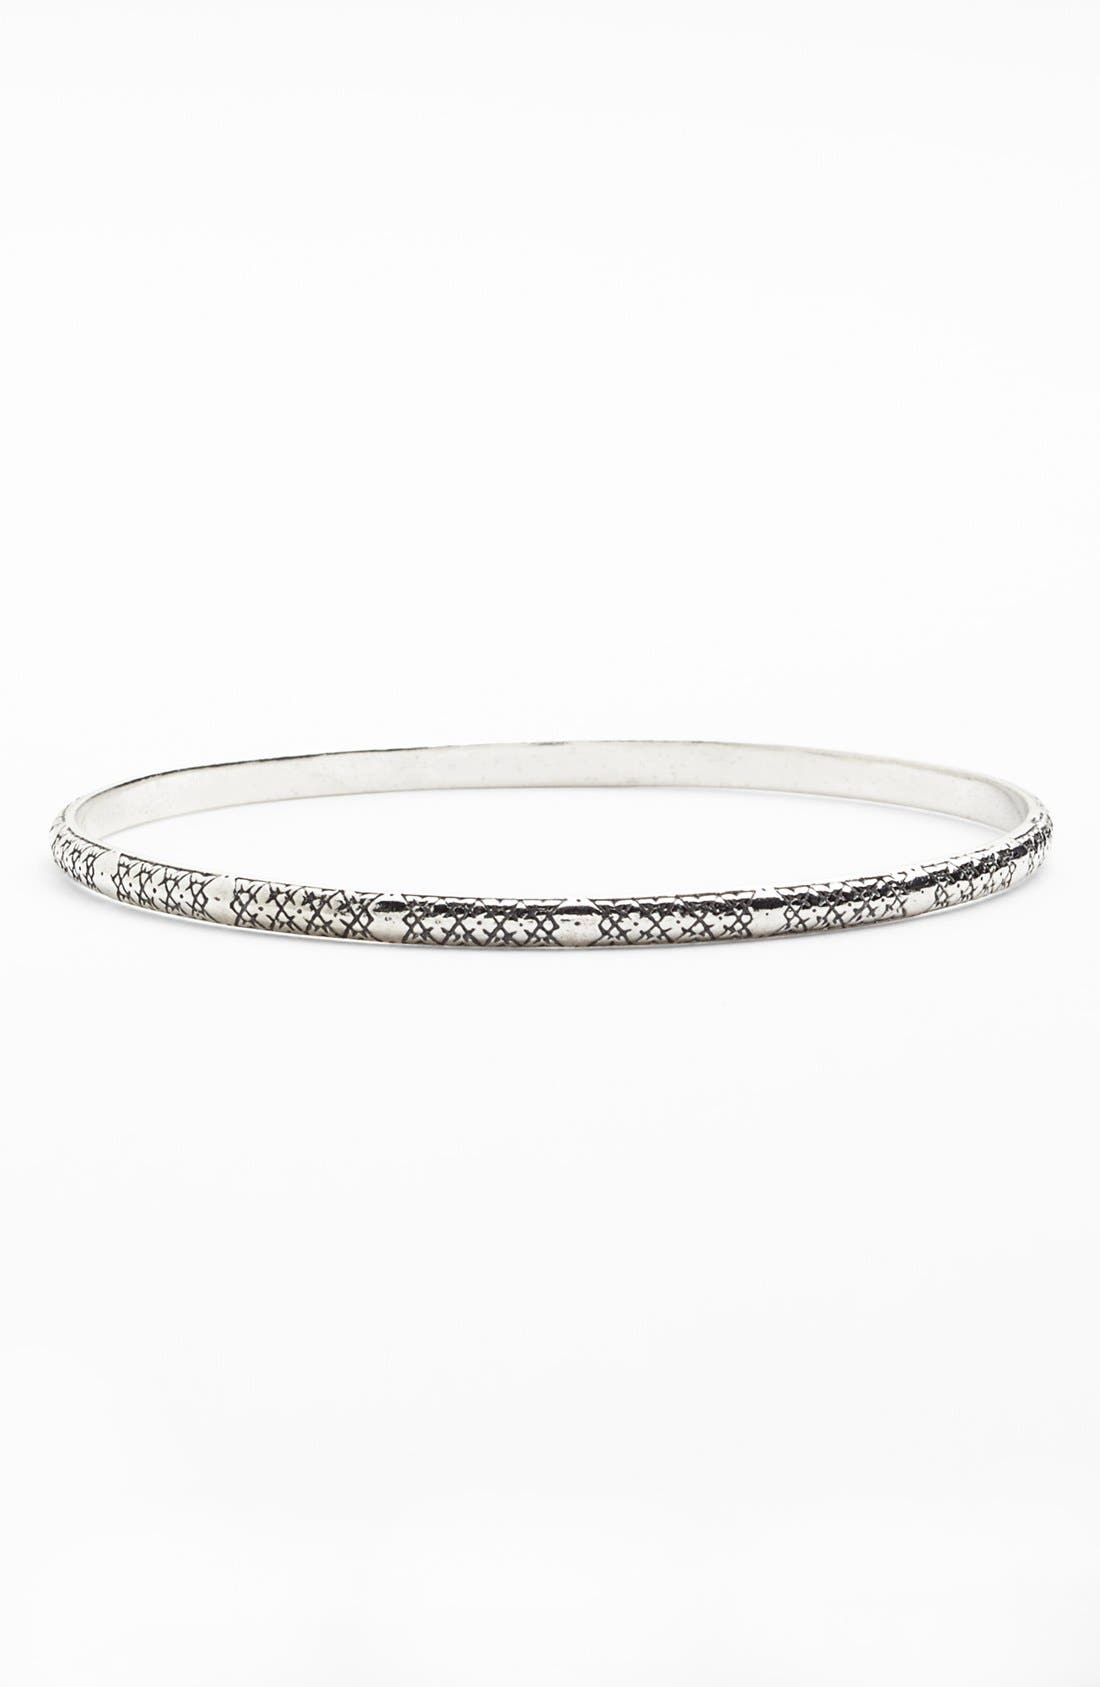 Konstantino 'Classics' Etched Bangle